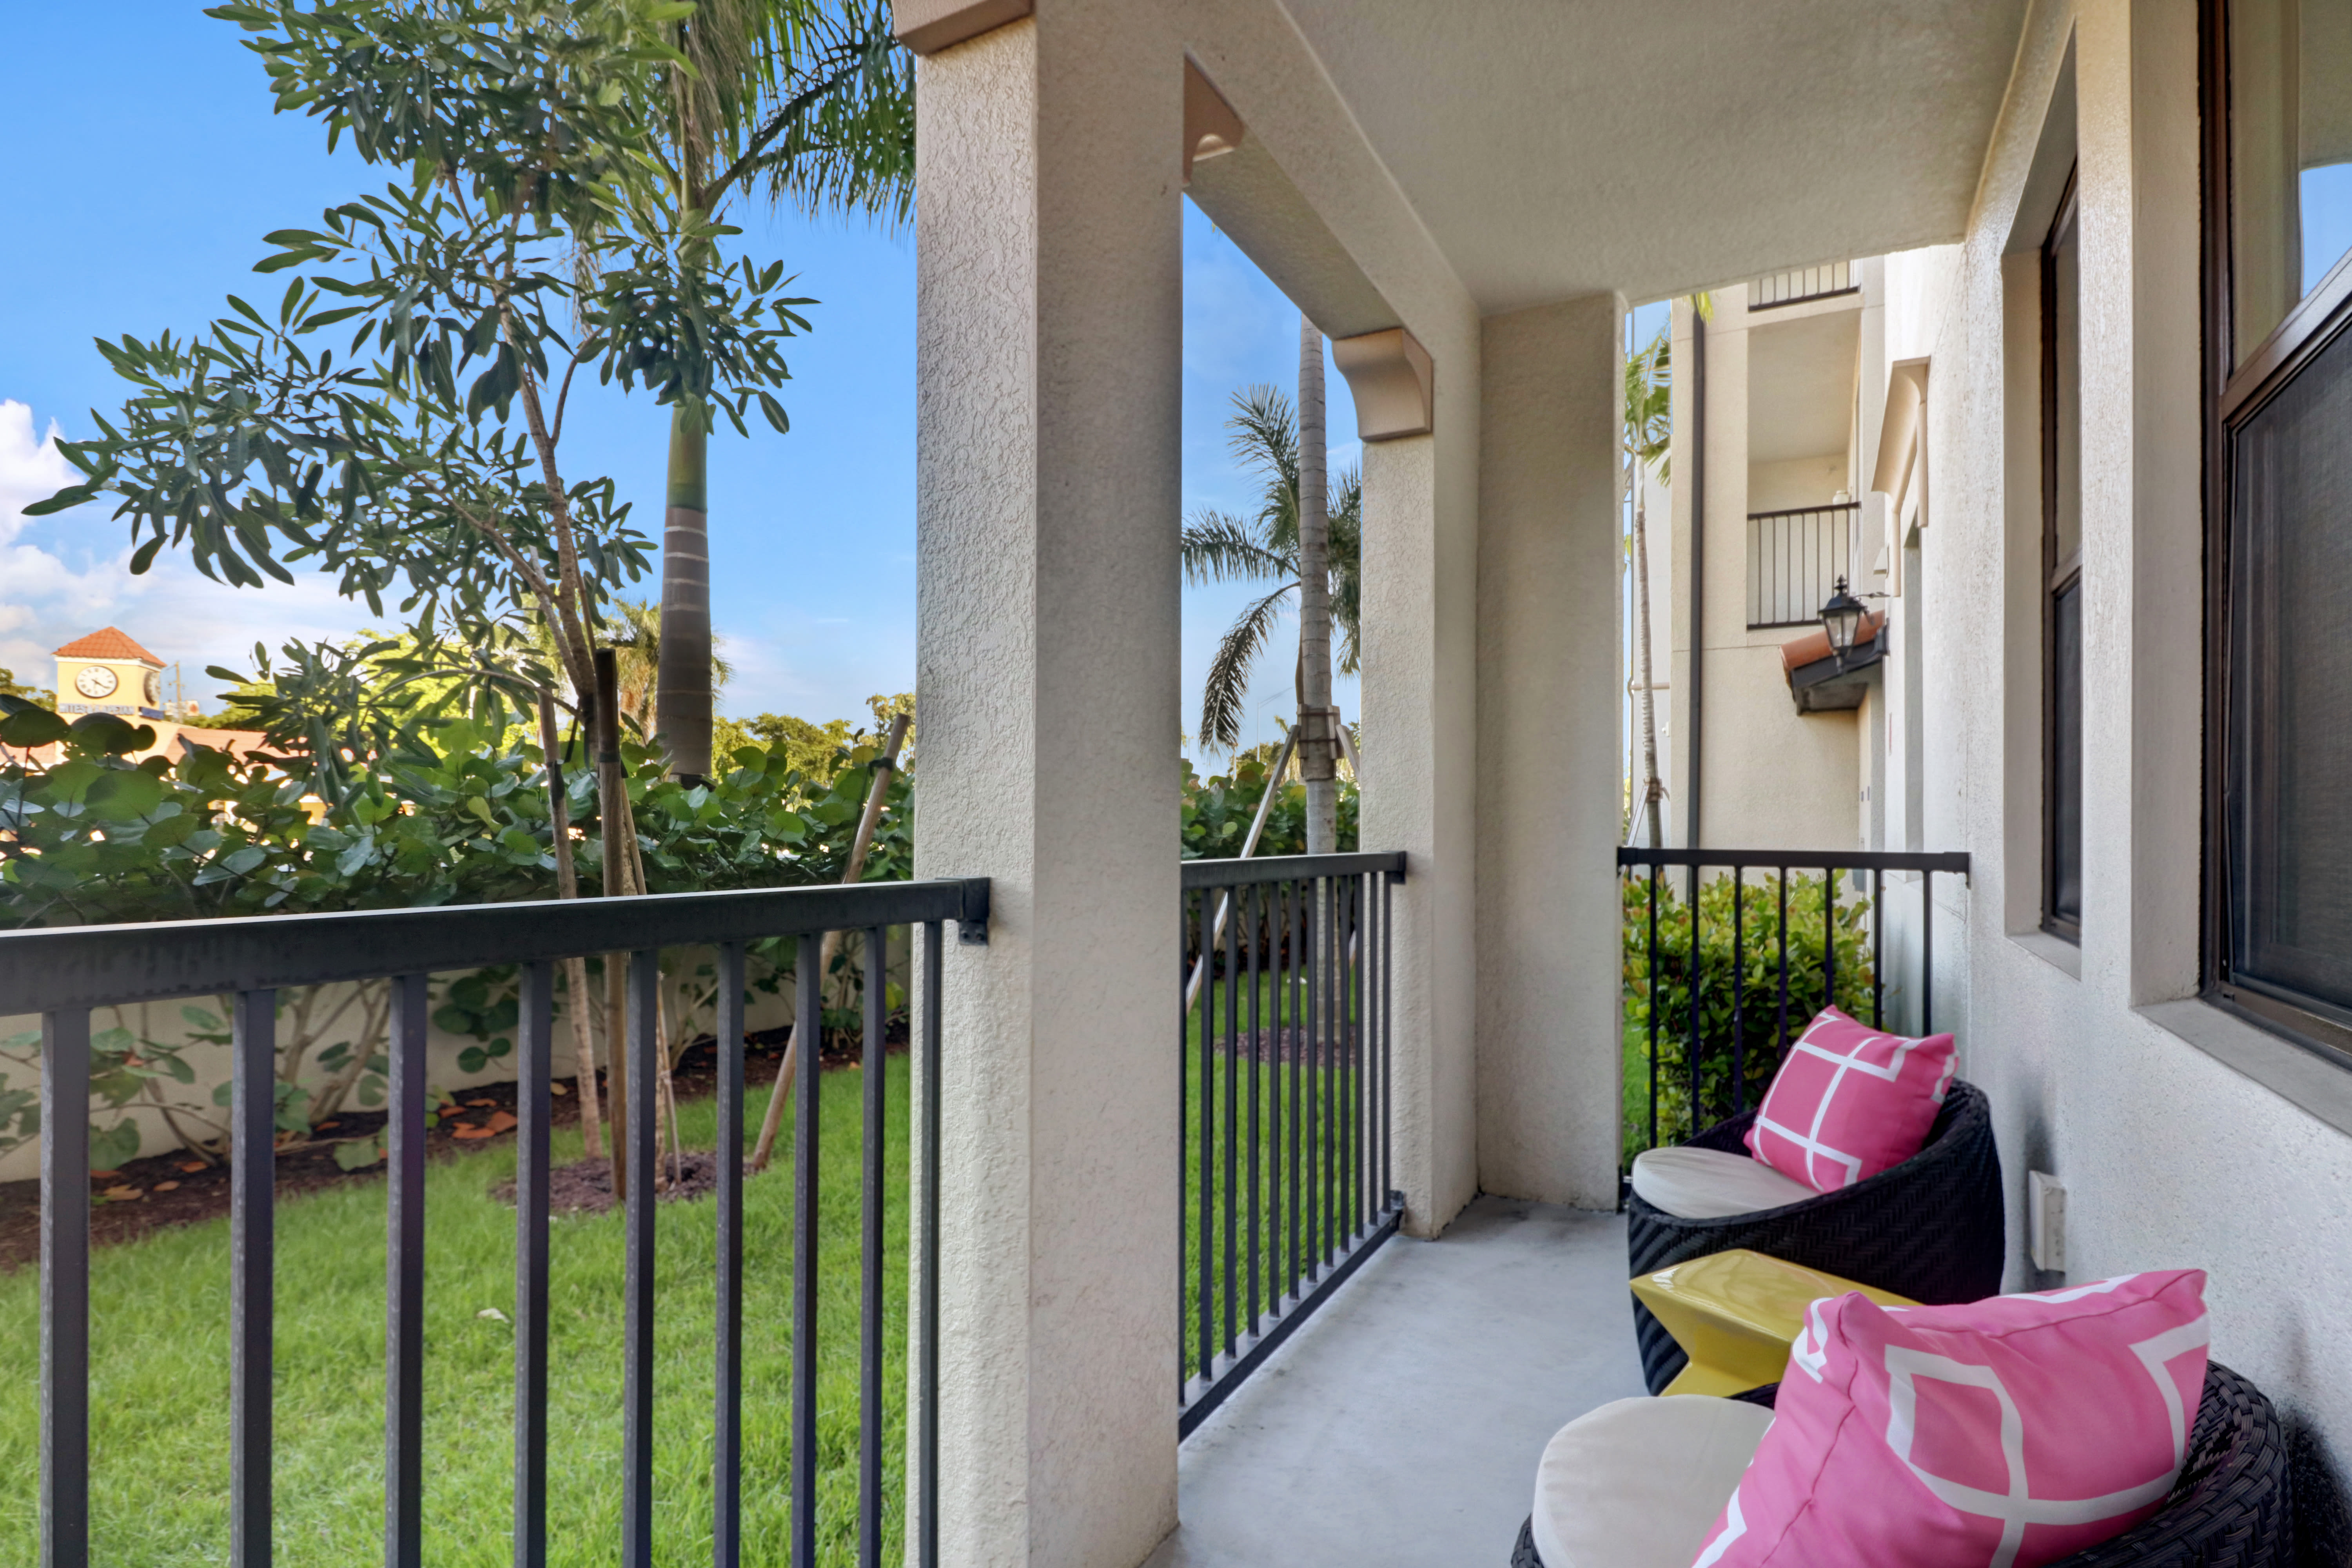 Outdoor balcony sitting area at Linden Pointe in Pompano Beach, Florida